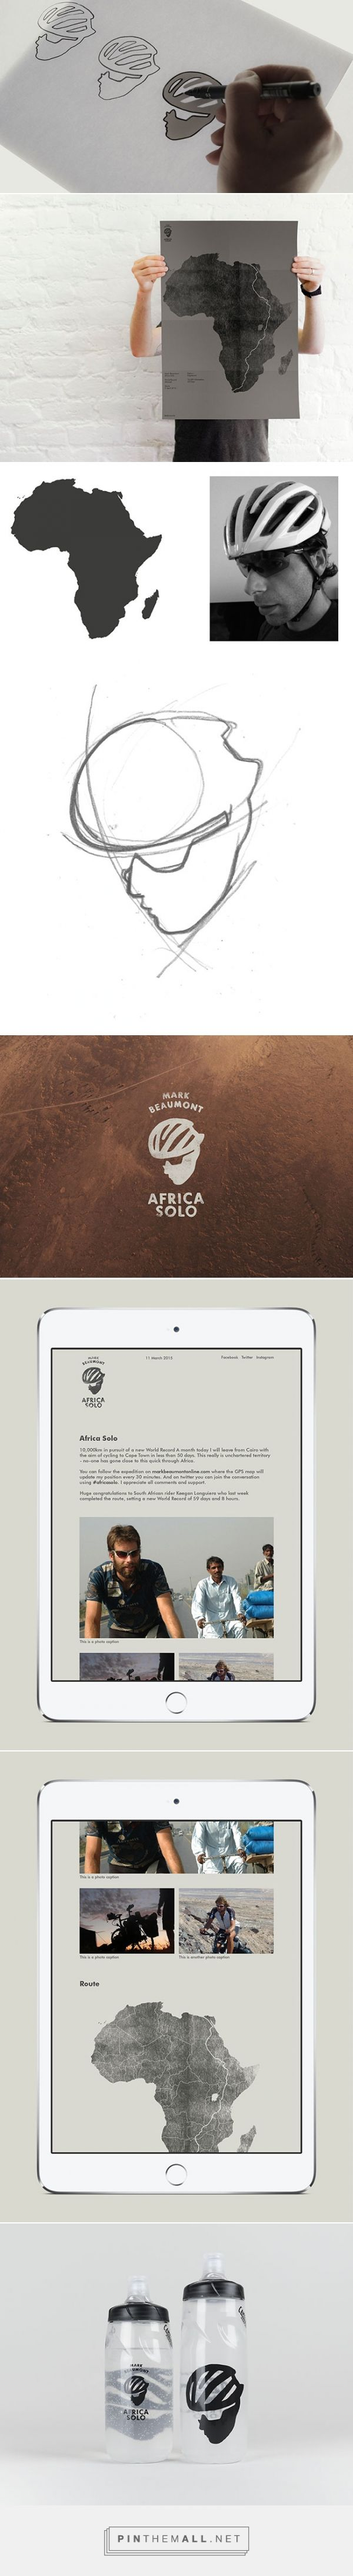 Love this conceptual logo design idea. Thought through, simple and great application!   Africa Solo | Logo Design Love - created via http://pinthemall.net